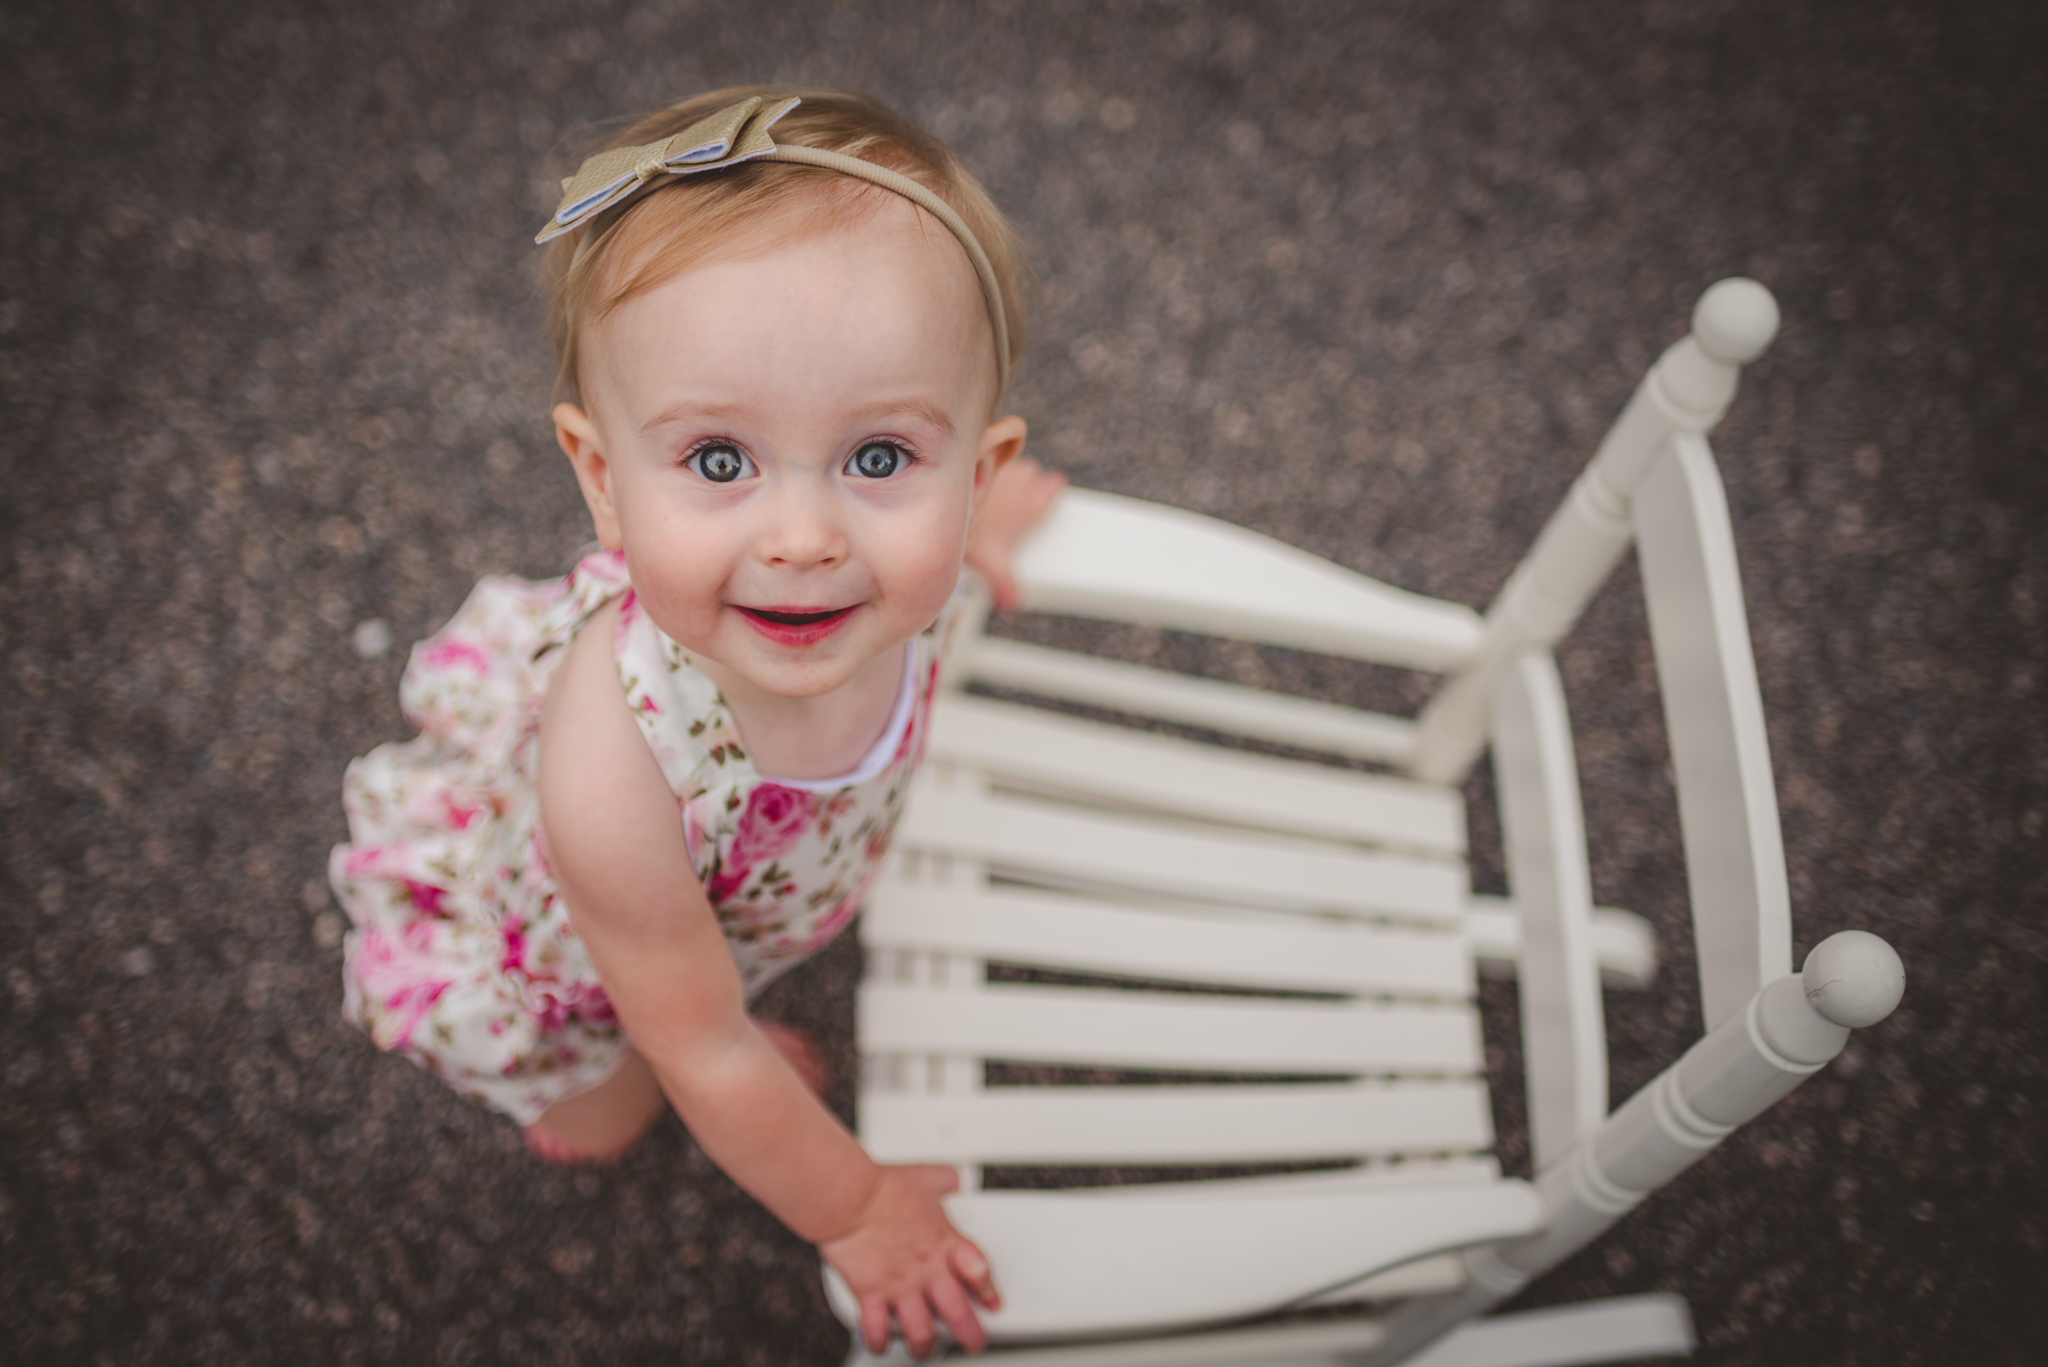 This one year old girl looks up and smiles from an old rocking chair in Rolesville, North Carolina, image taken by Rose Trail Images.